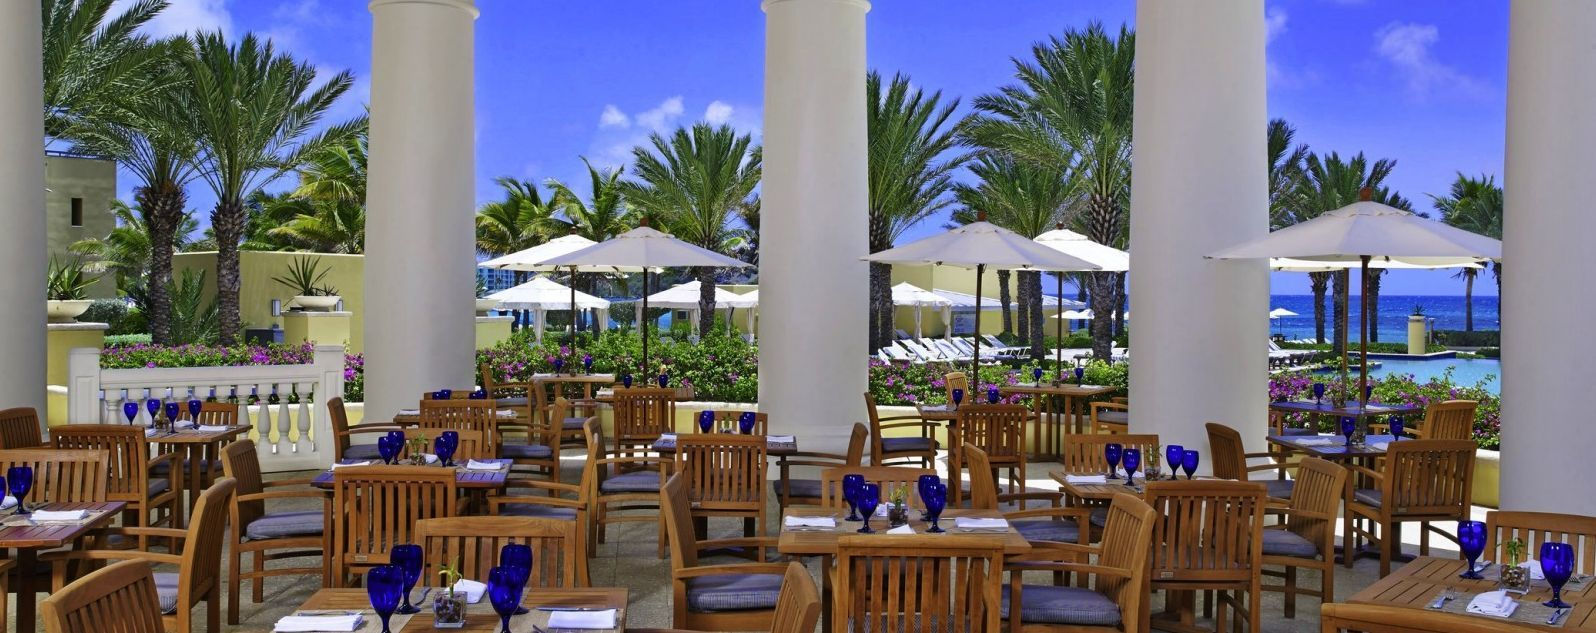 The Westin St. Maarten - Ocean Restaurant